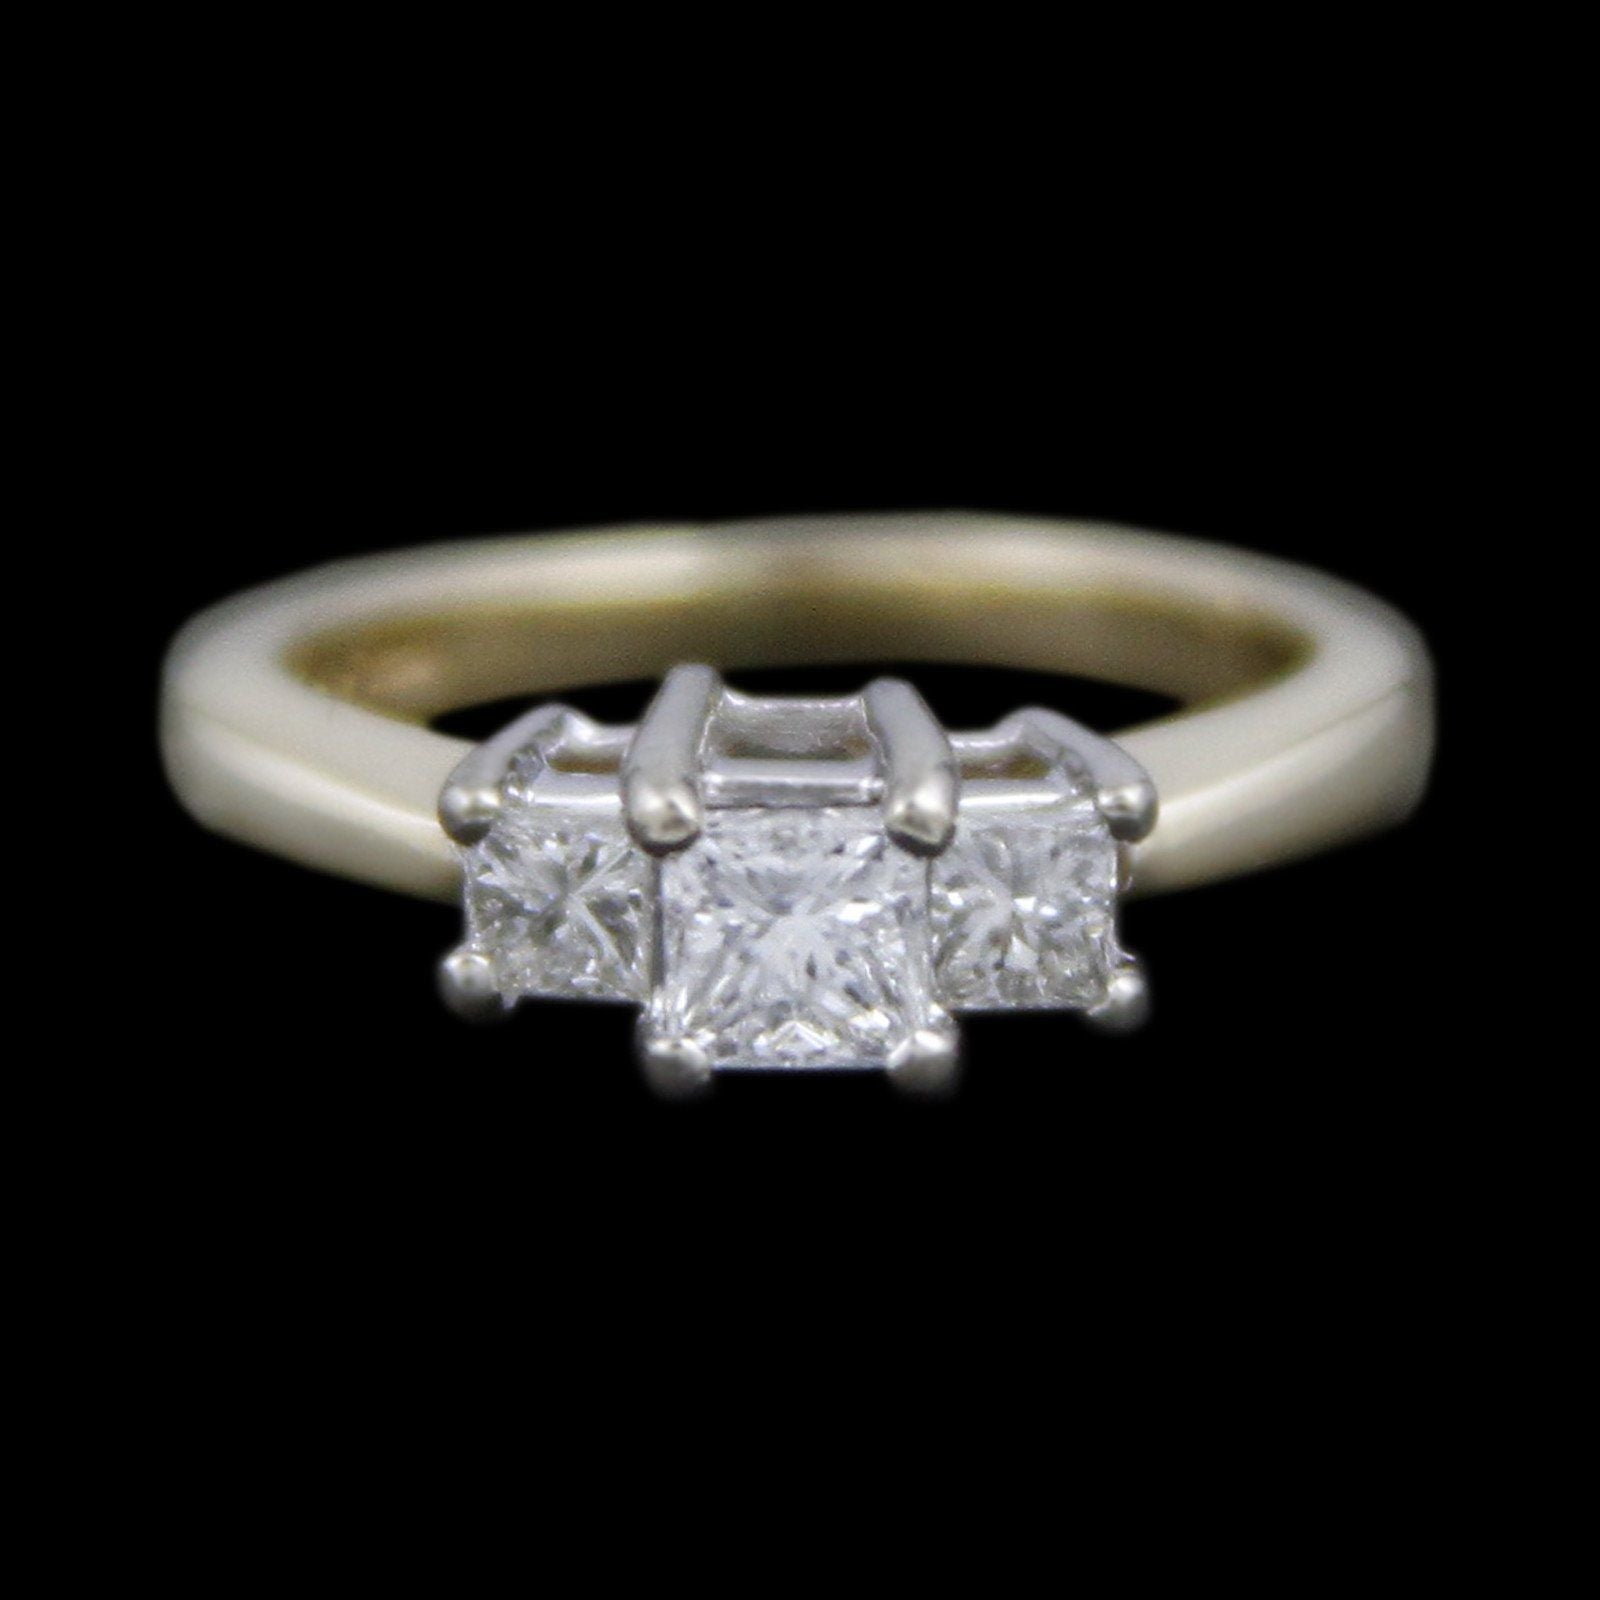 DeBeers Style Ring with .50cttw Princess Cut Diamonds Crafted in 14k Yellow Gold